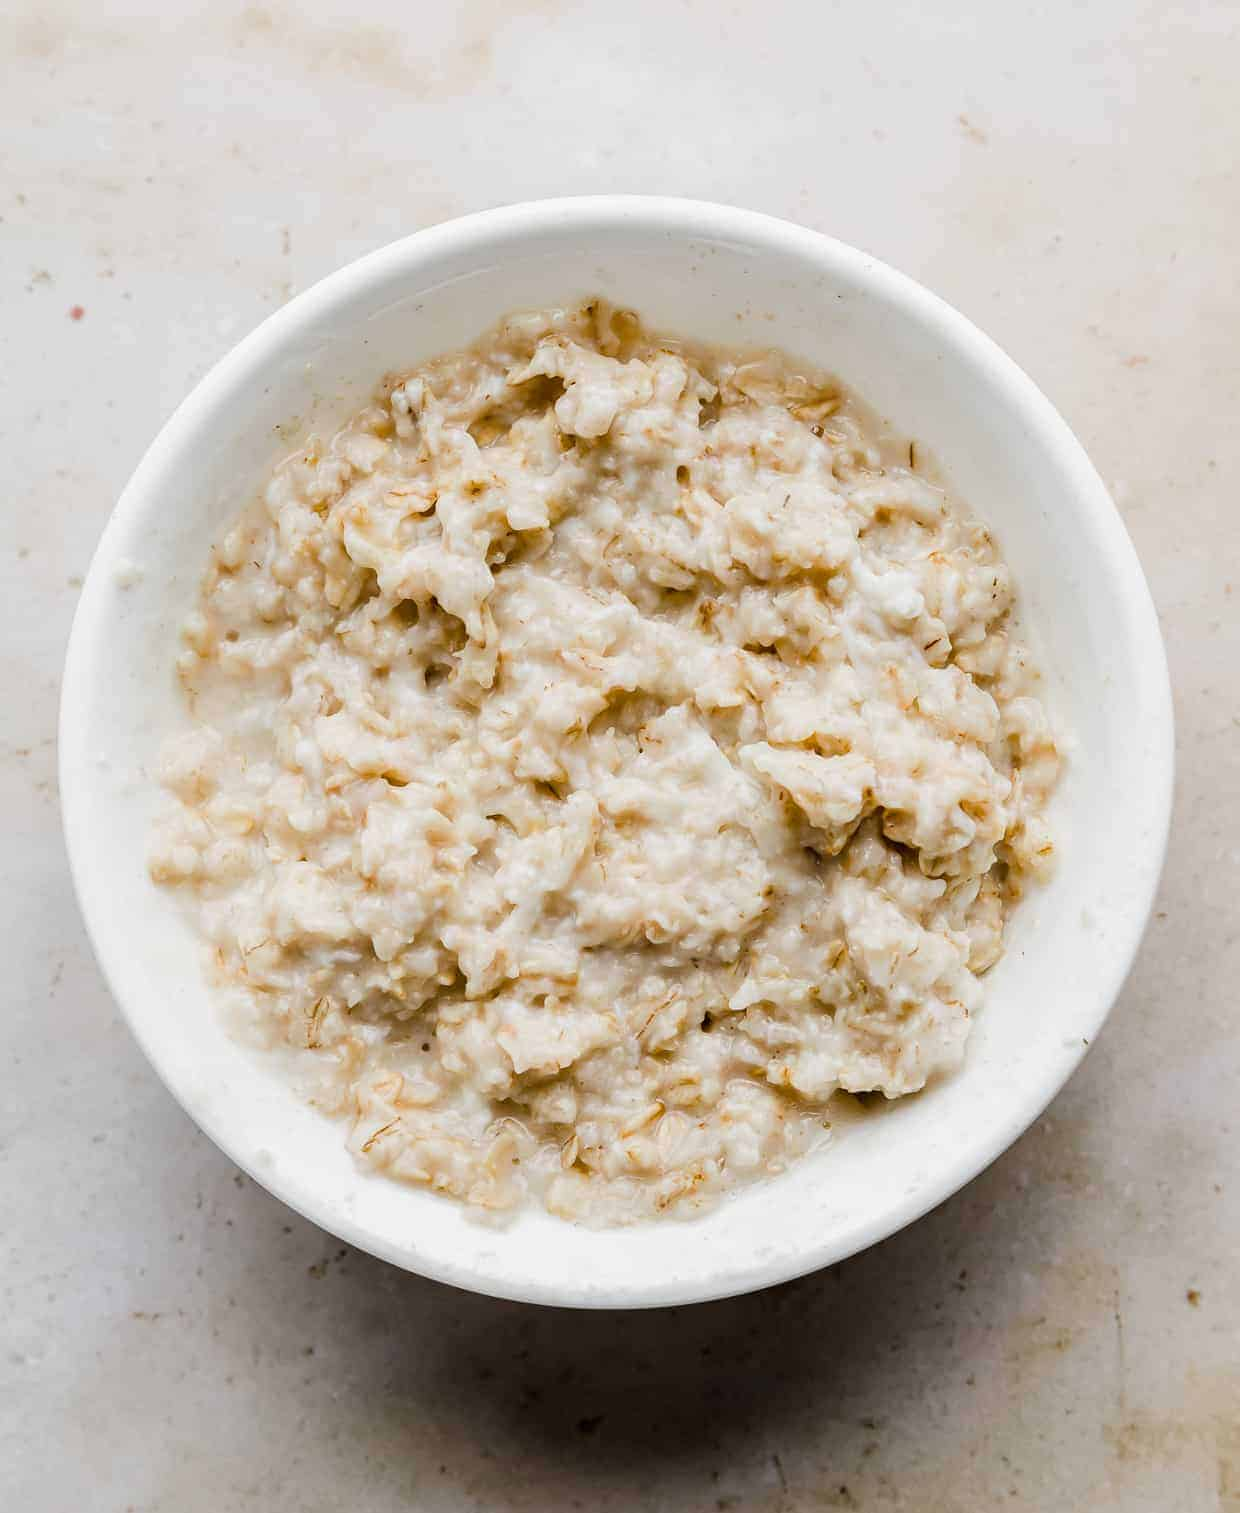 A white bowl with cooked rolled oats in it.